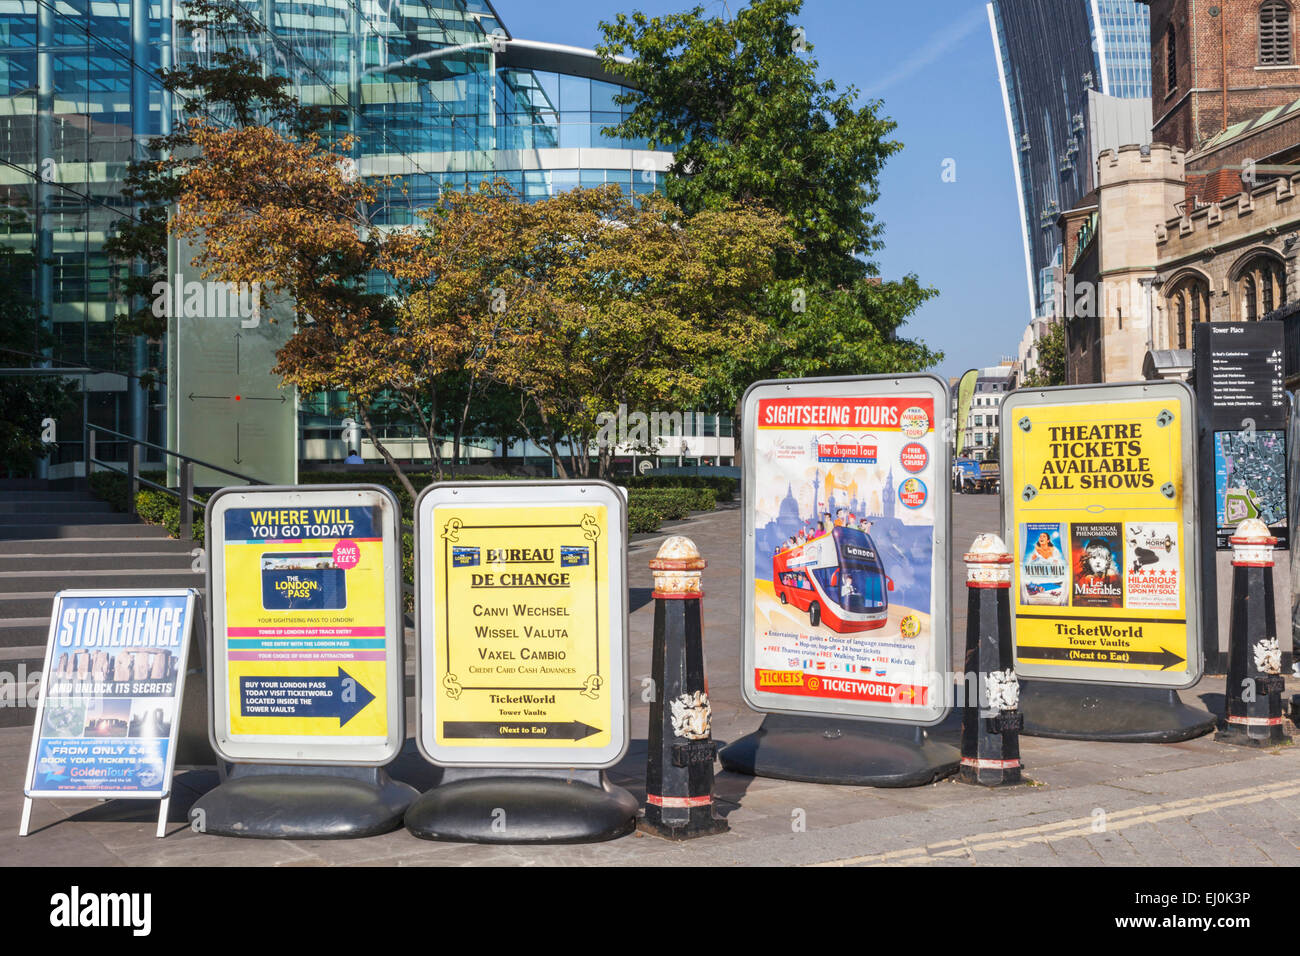 England, London, Advertising Billboards Blocking Footpath Stock Photo